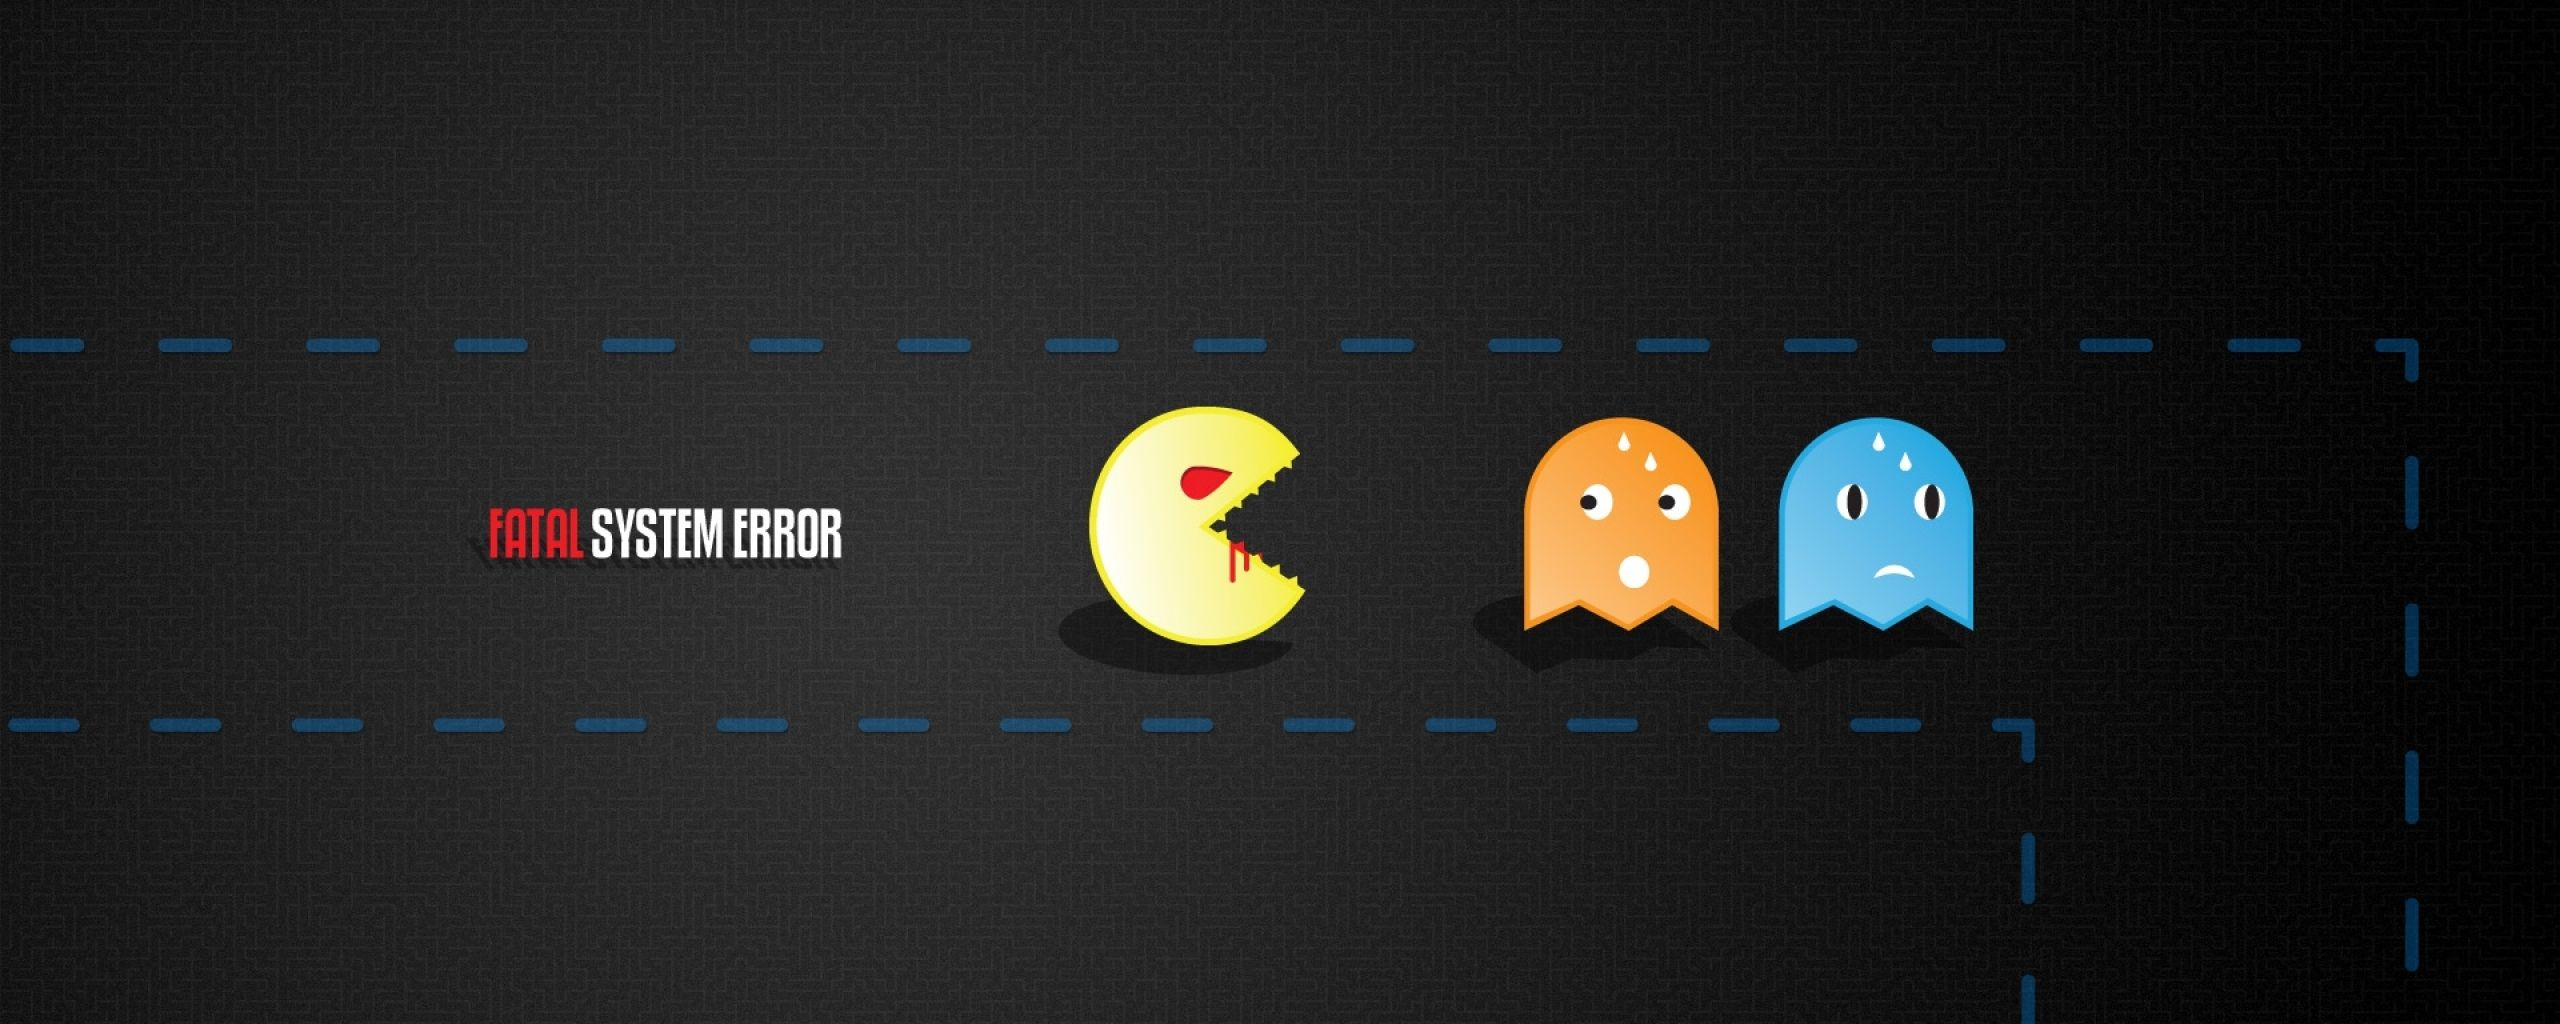 2560x1024 pac man dual monitor wallpaper hd 3 | Dual Monitor Wallpaper